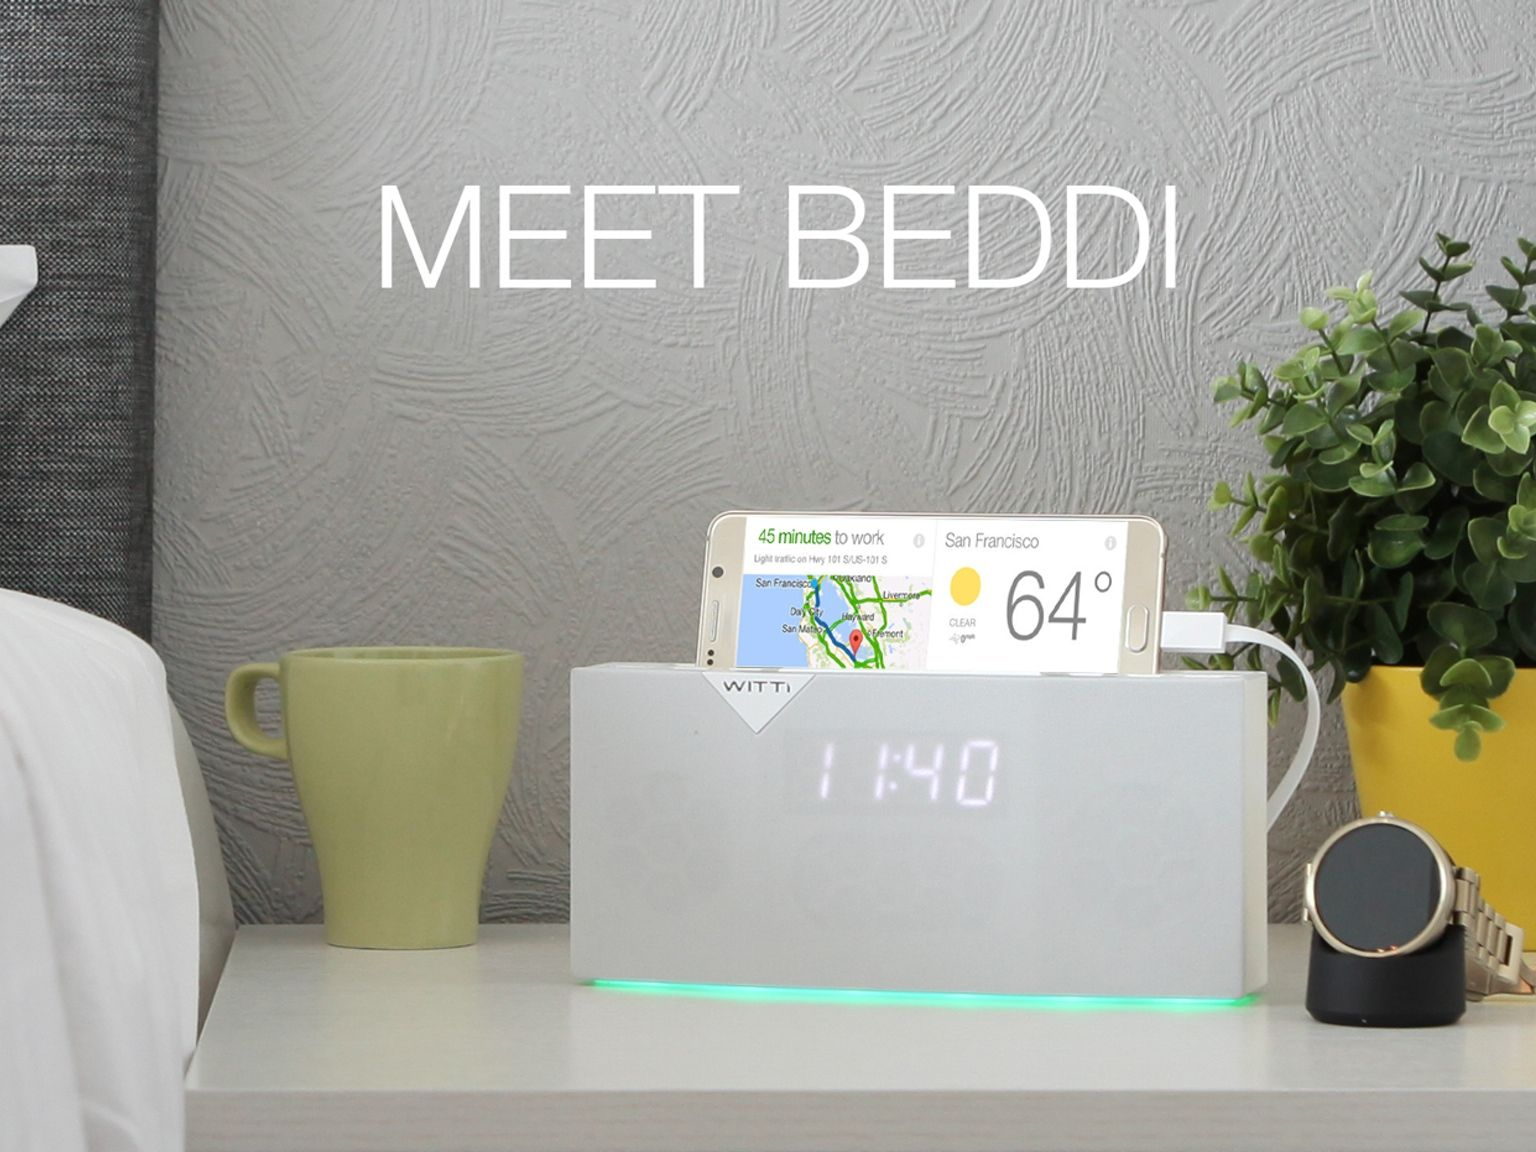 This app-enabled alarm clock/speaker includes Spotify, Uber ...